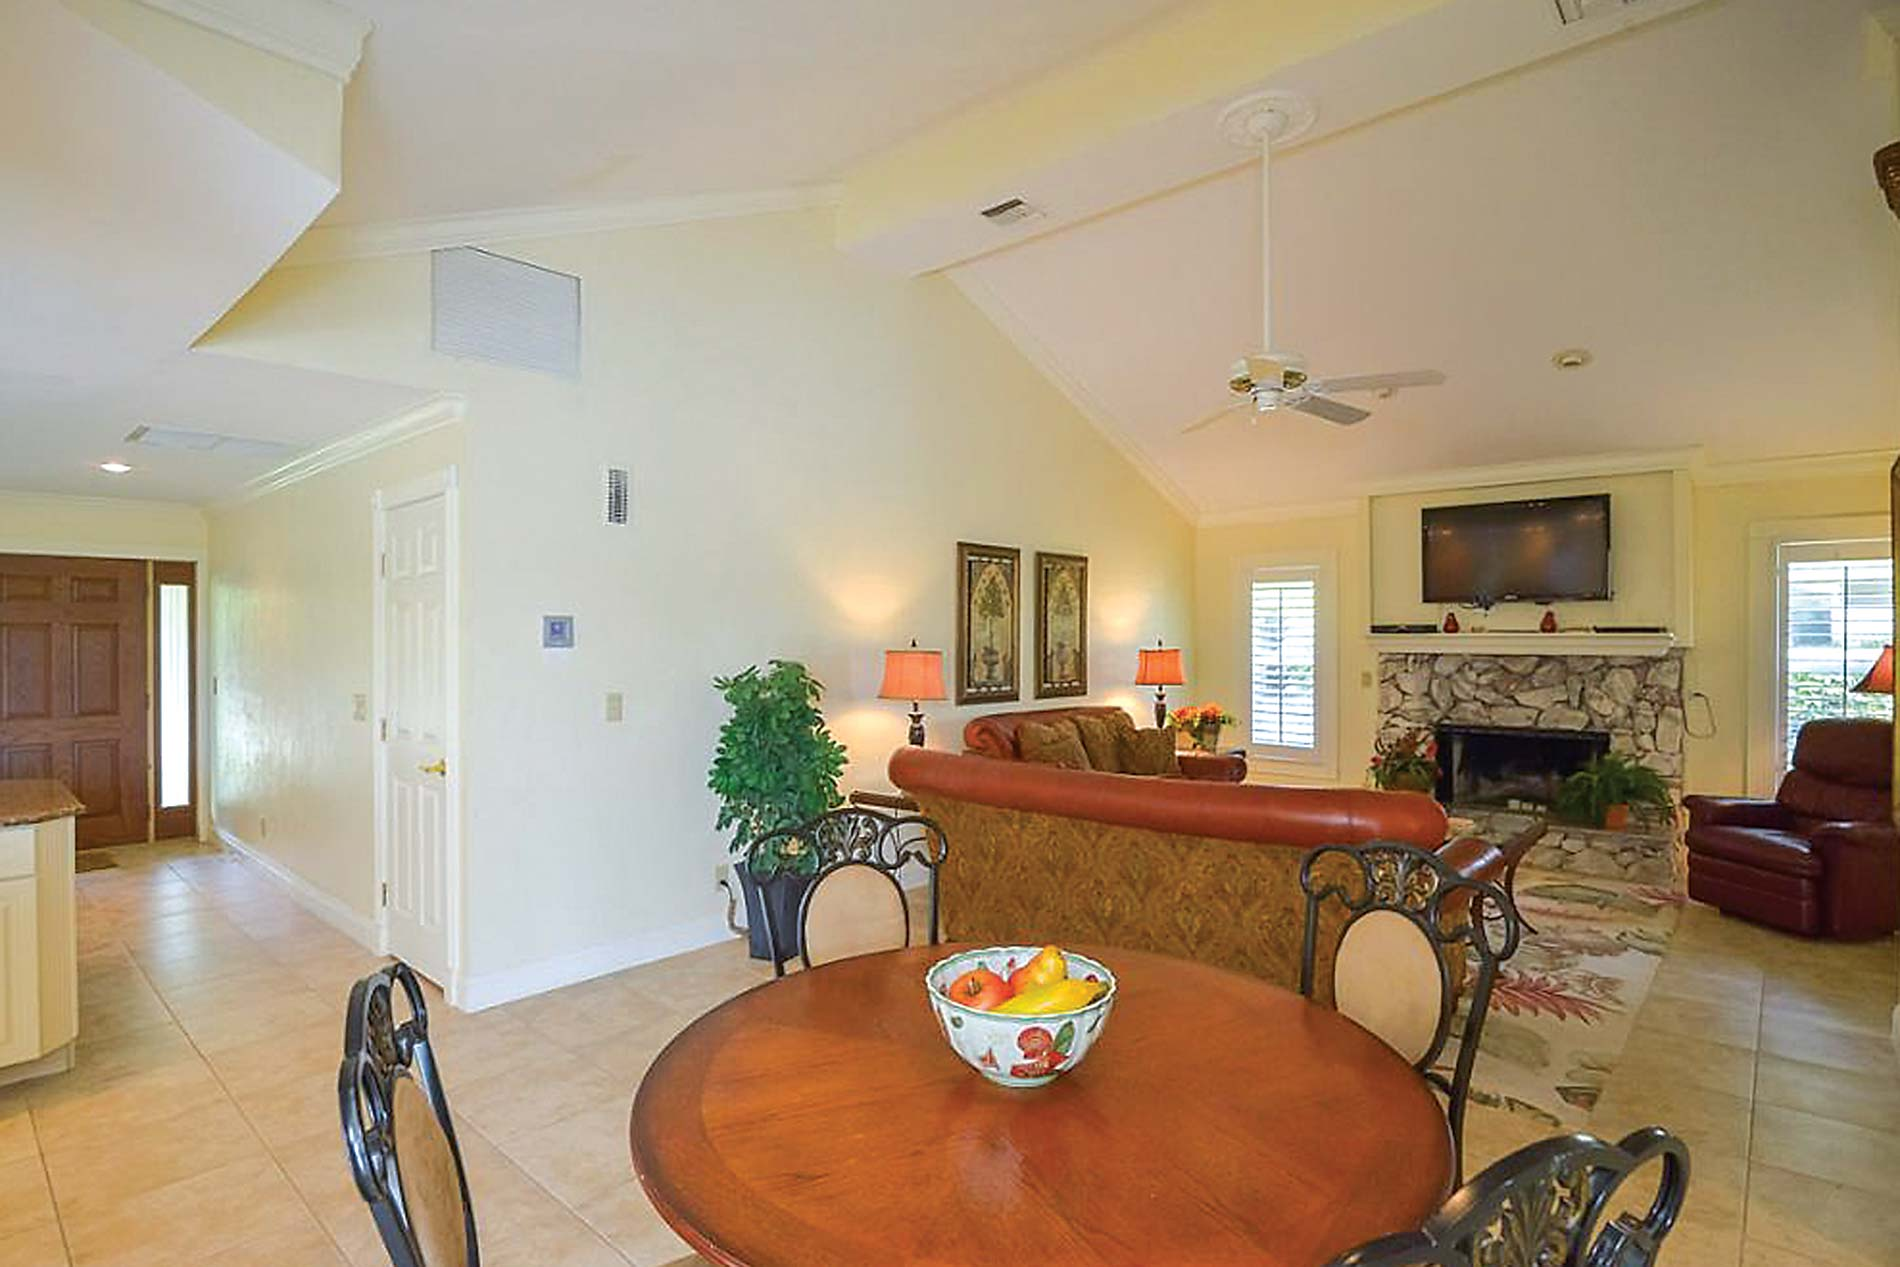 Villa Amazon in Marco Island - sleeps 6 people